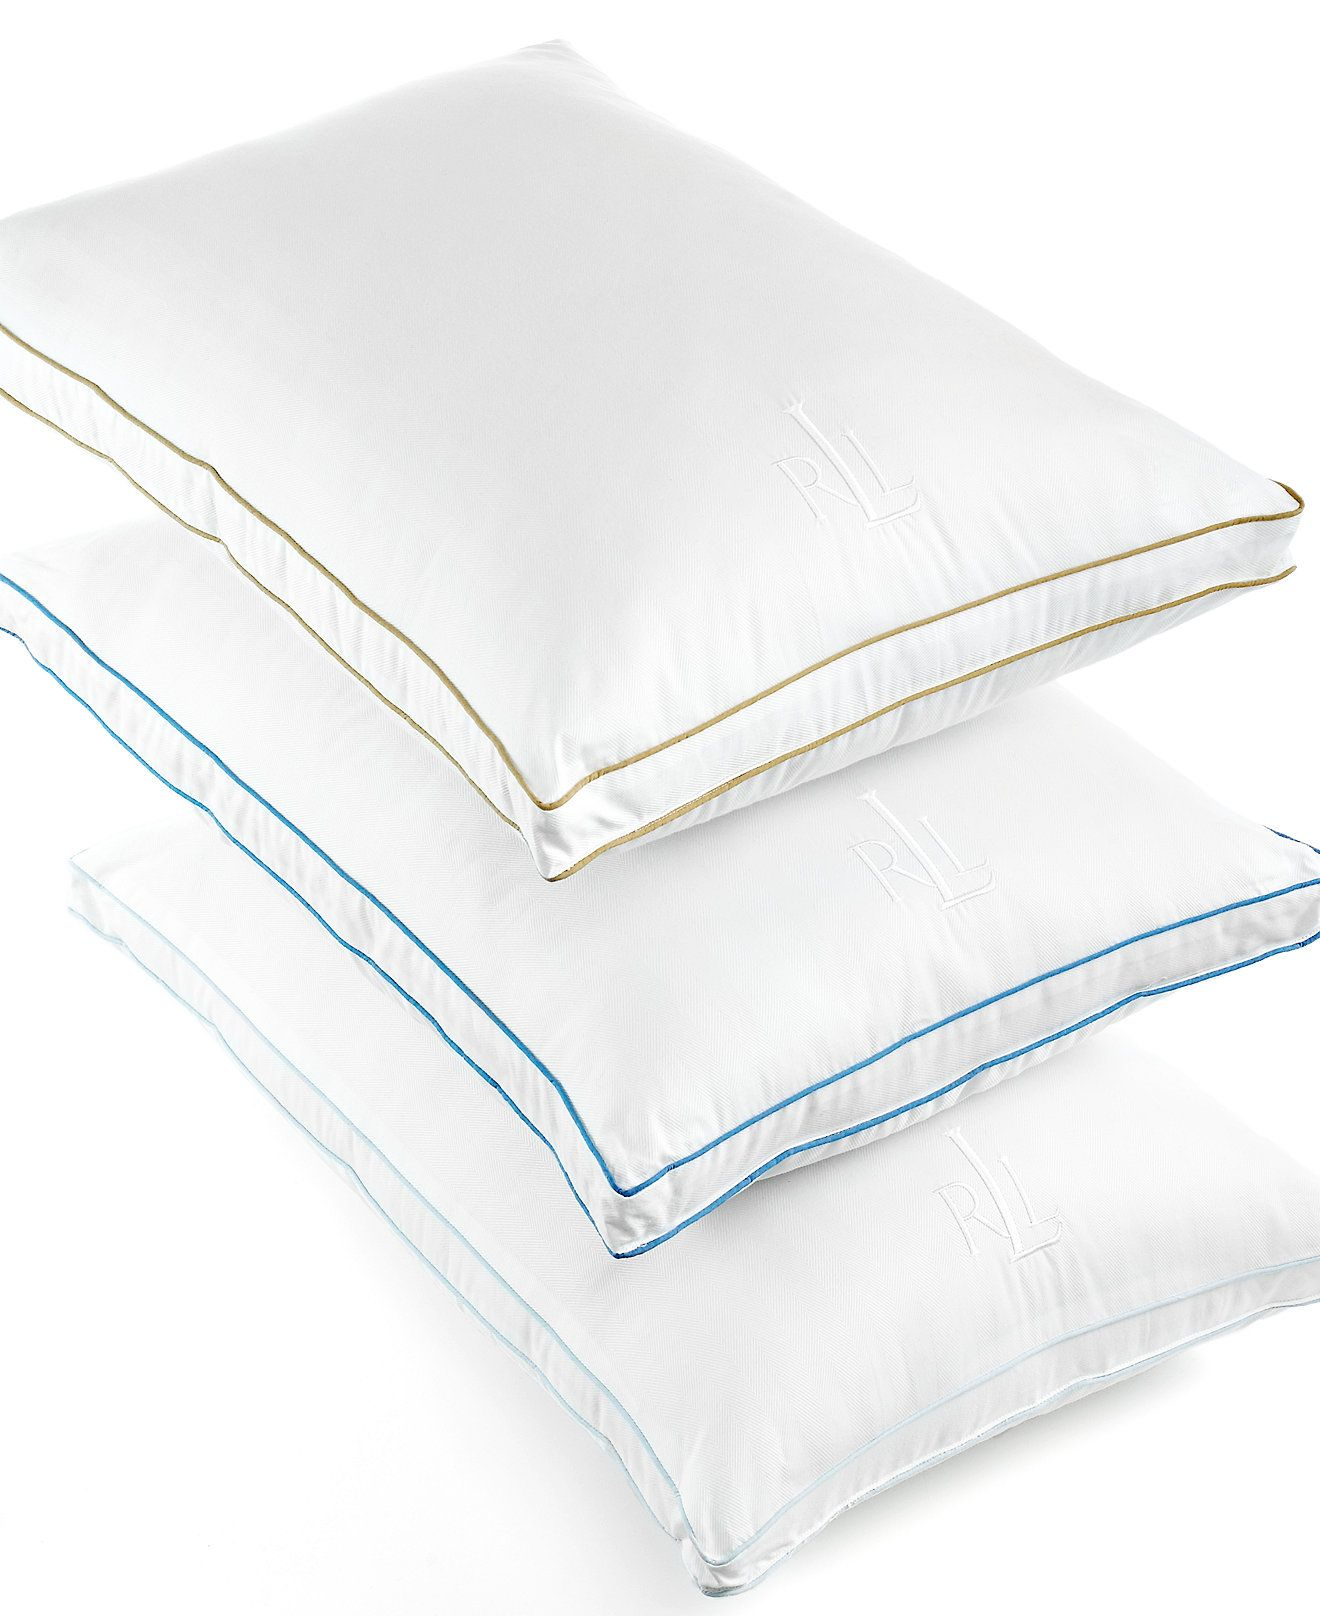 Lauren Ralph Lauren Lawton Down Alternative Gusset Pillows 300 Thread Count Pillows Bed Bath Macy S Bed Pillows King Pillows Pillows